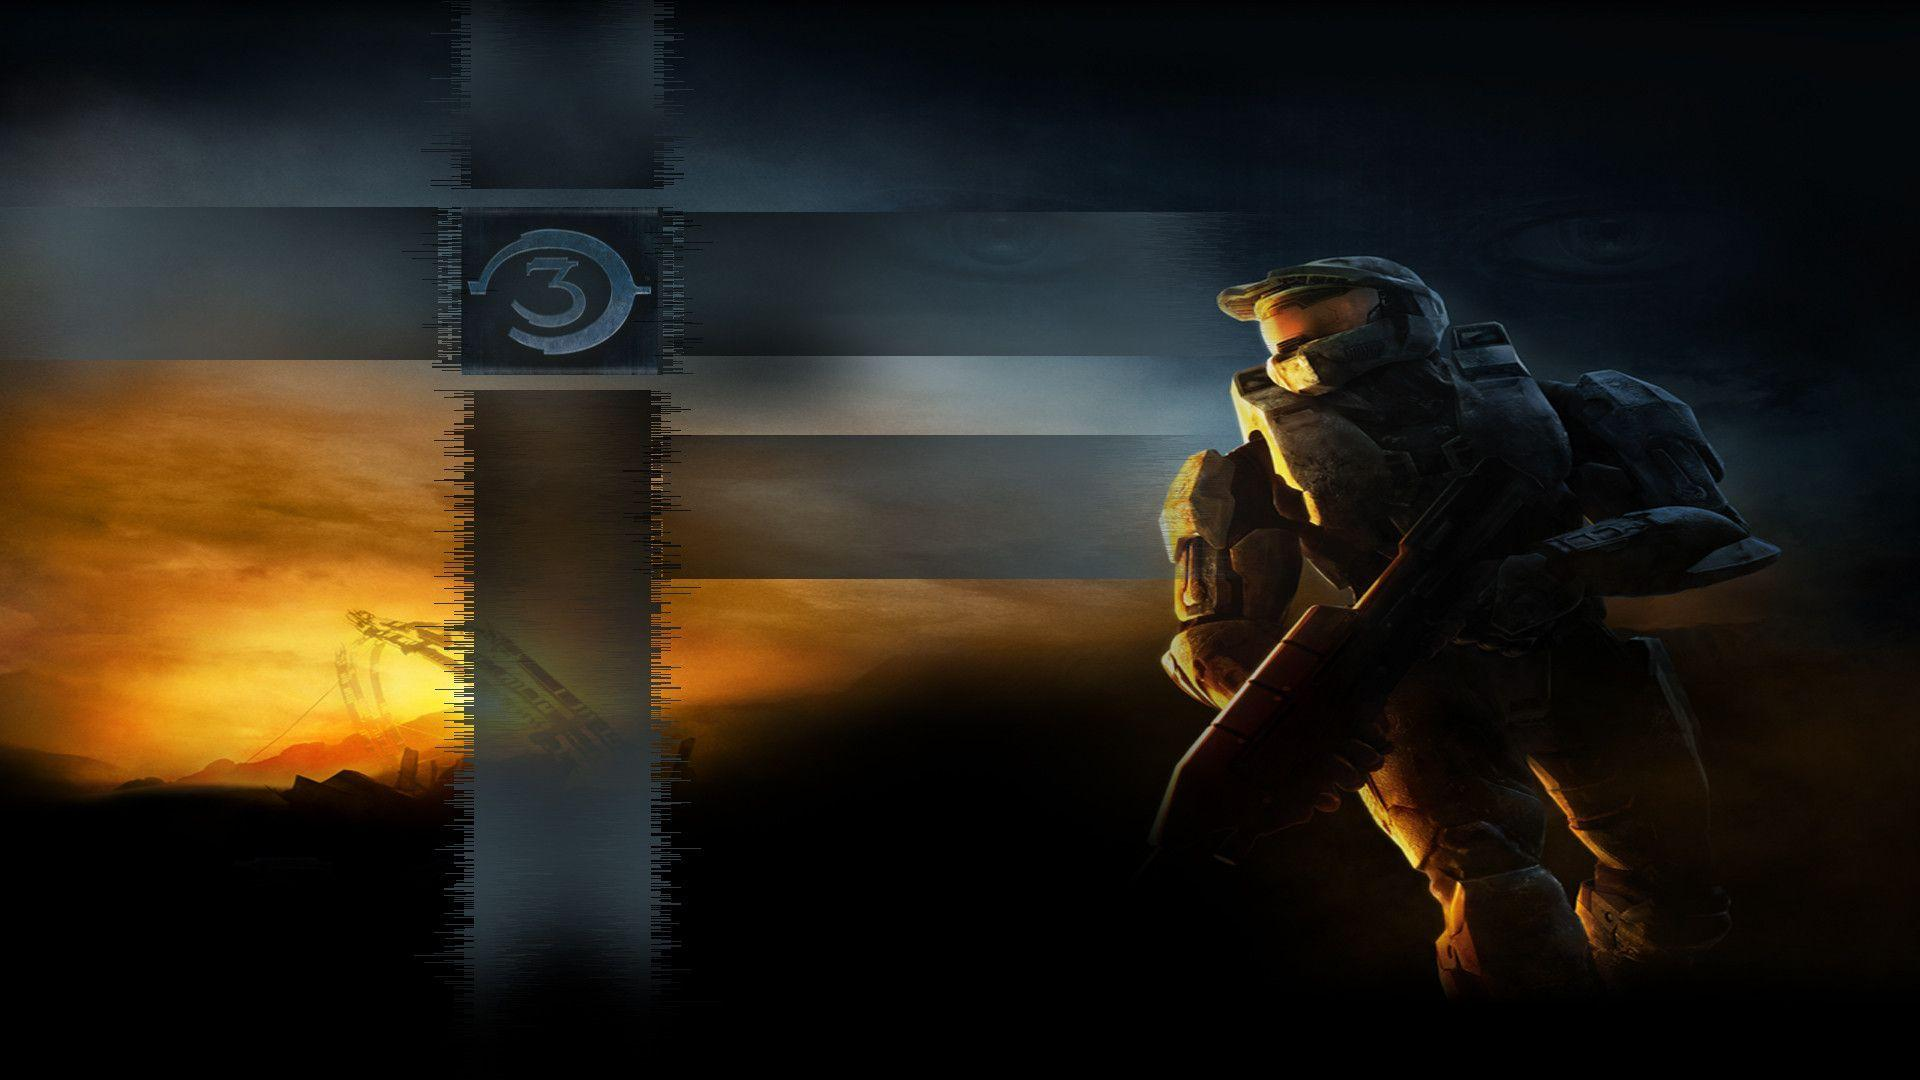 Ps3 Halo 3 Desktop Wallpapers « DotGames